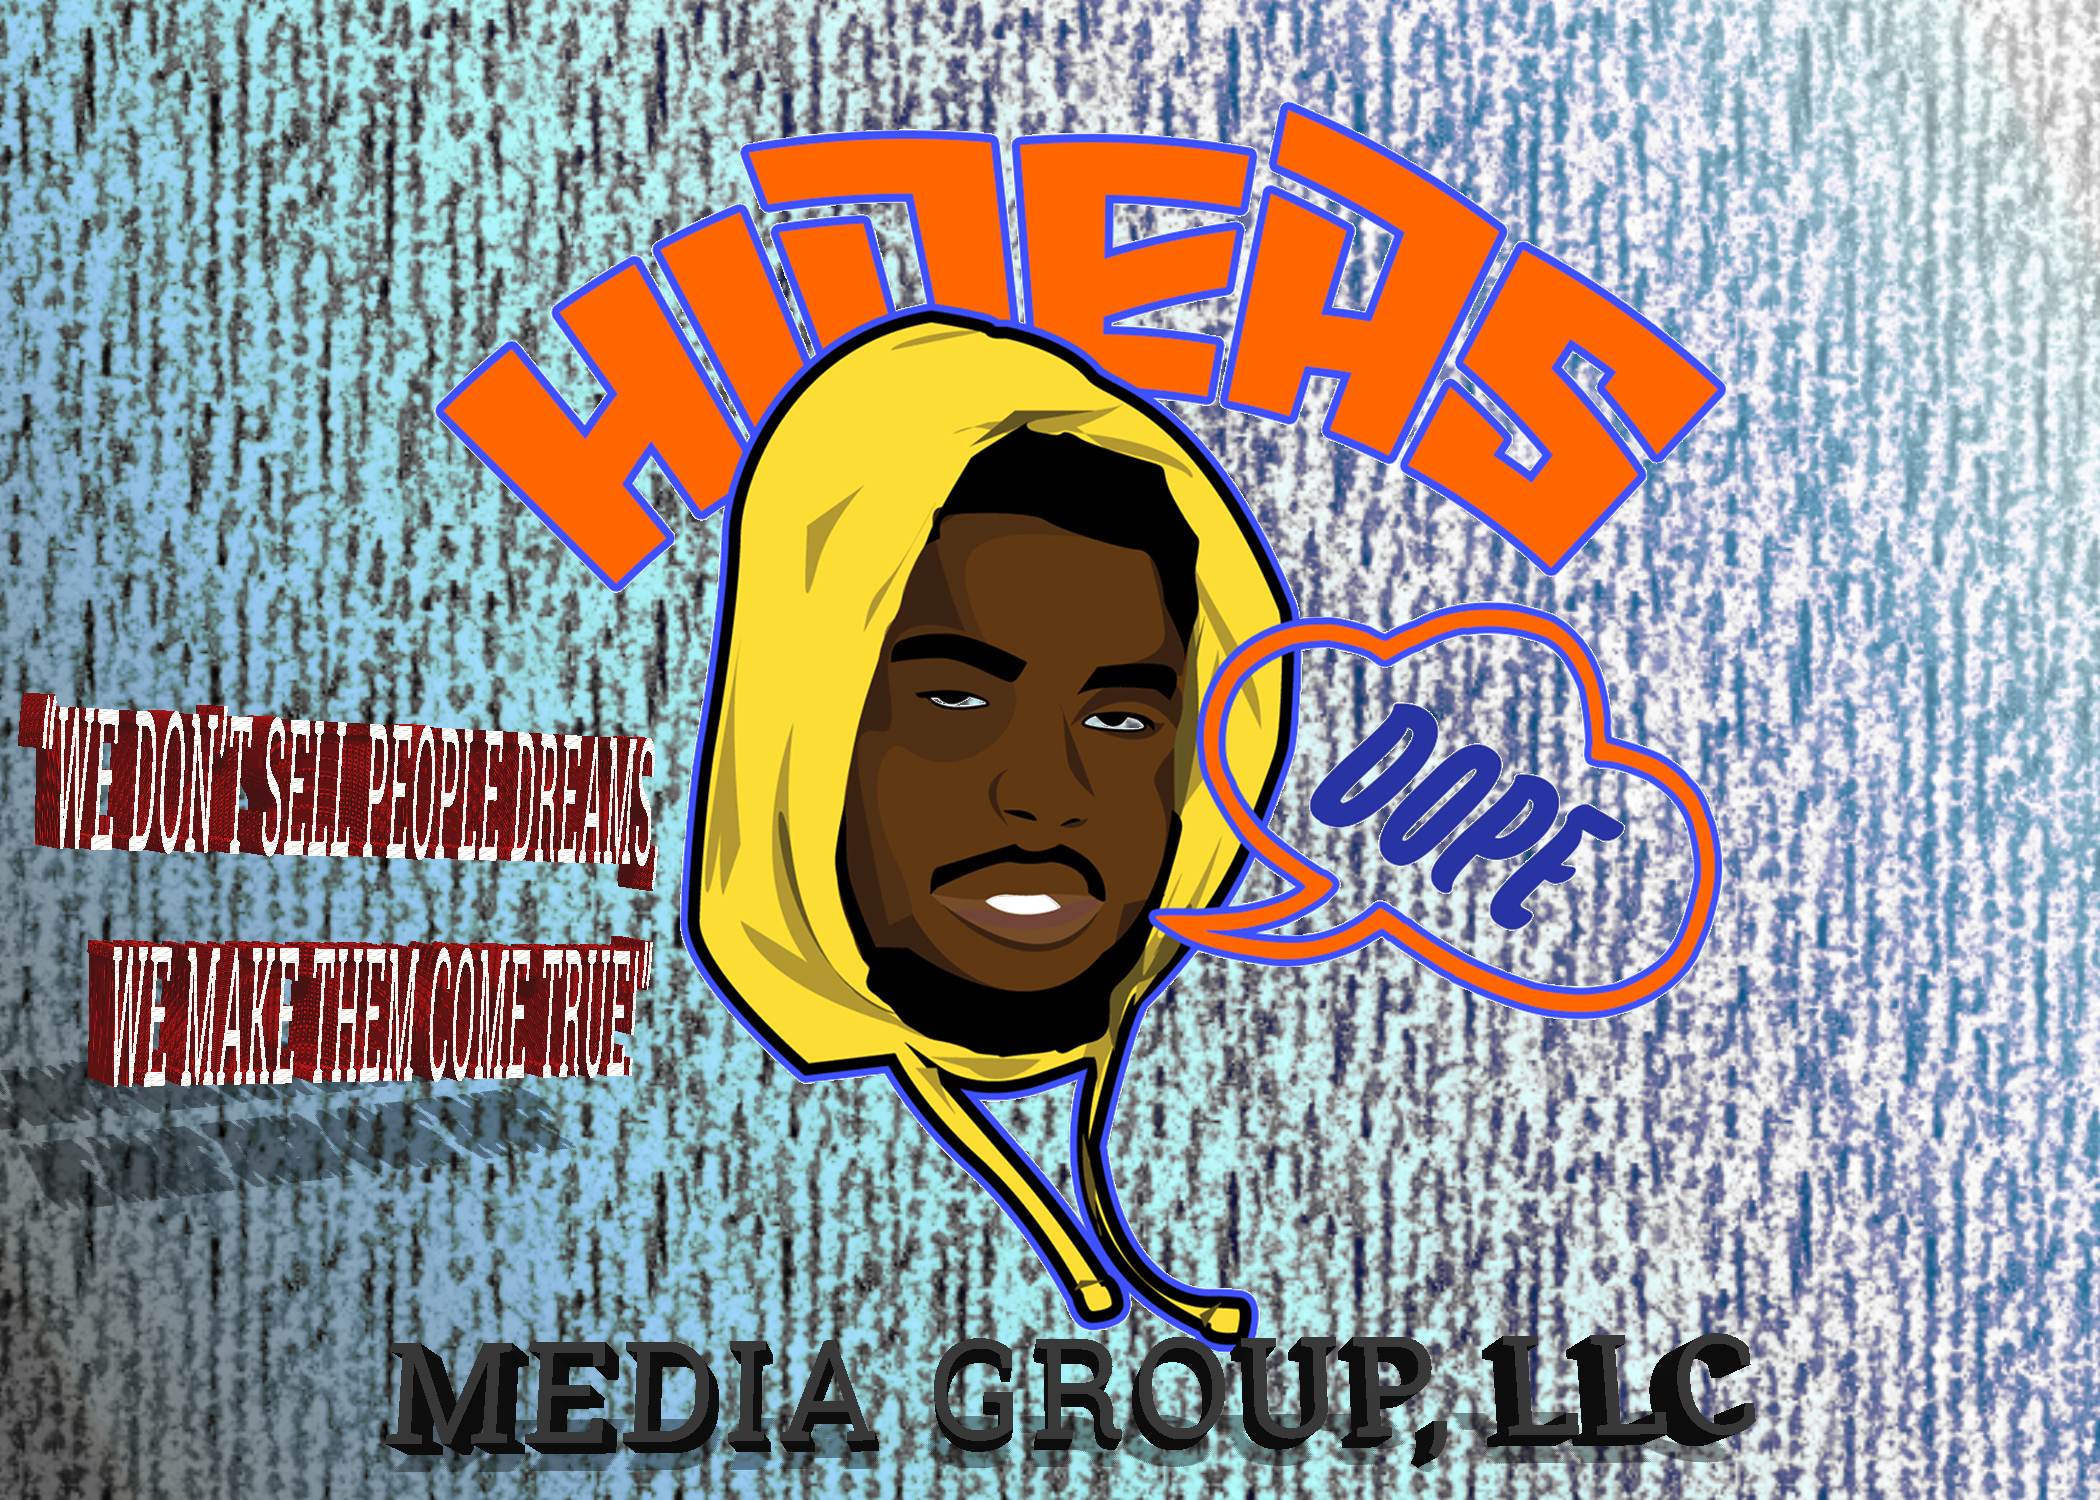 Hideas Media Group Logo